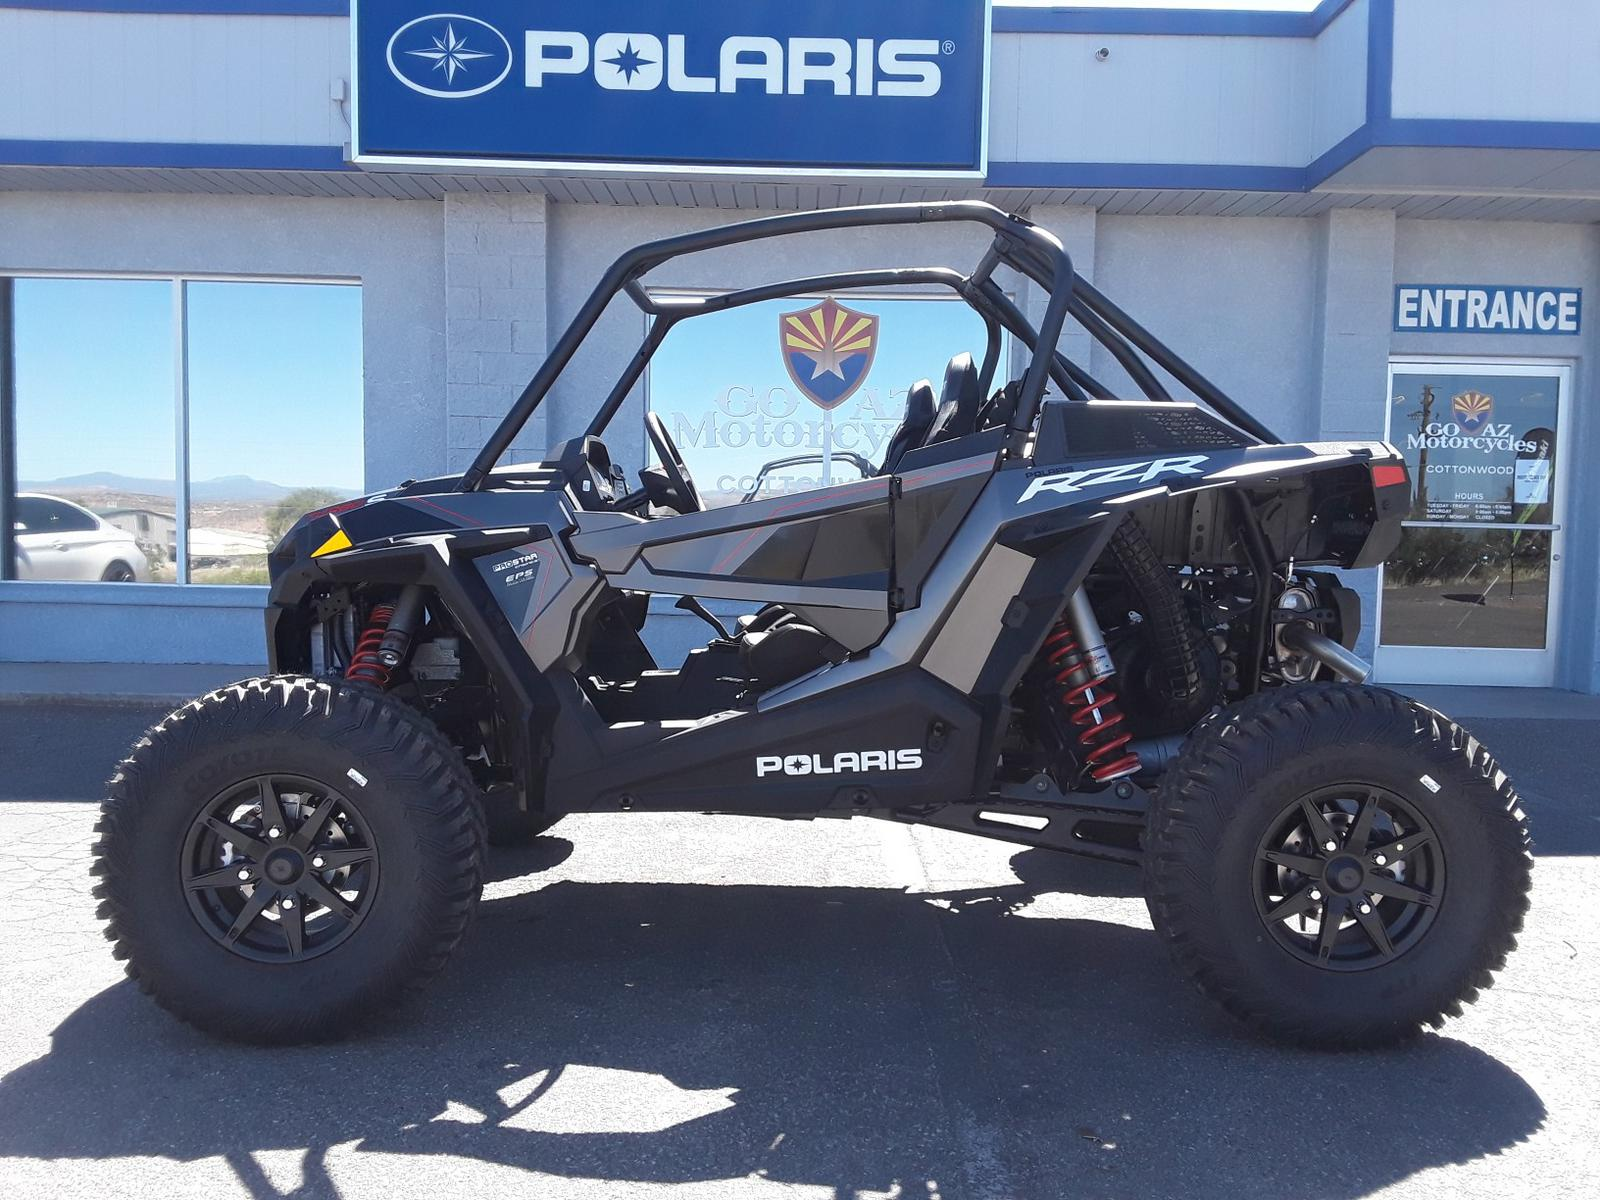 2019 Polaris Industries RZR-19,TURBO,T,72,PS,EVAP,TTNM for sale in